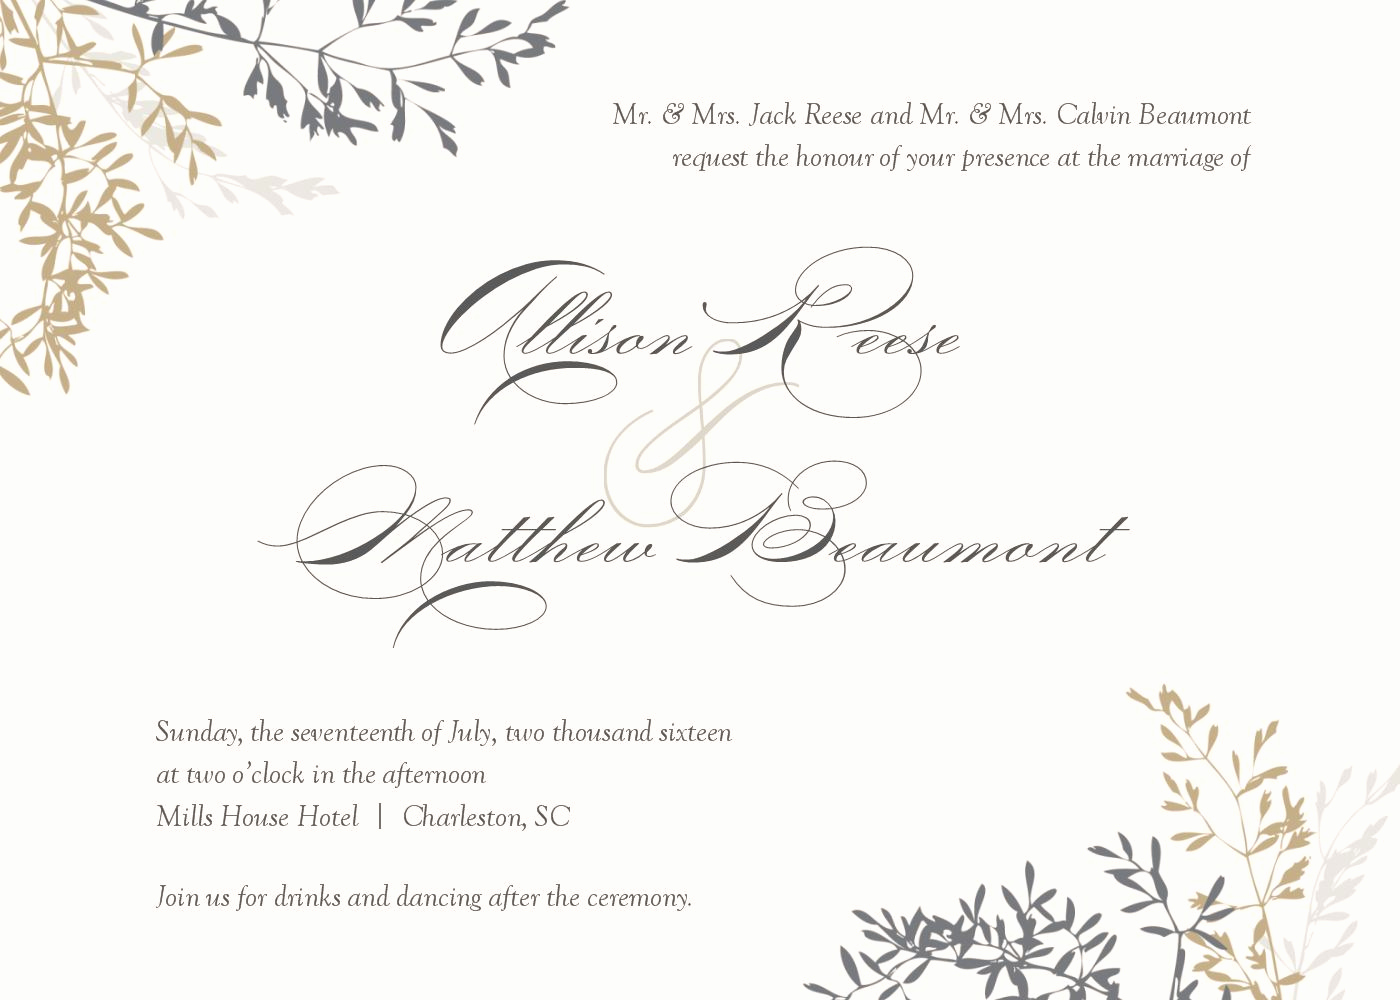 Wedding Invitation Templates Free Fresh Wedding Invitation Wedding Invitations Template Superb